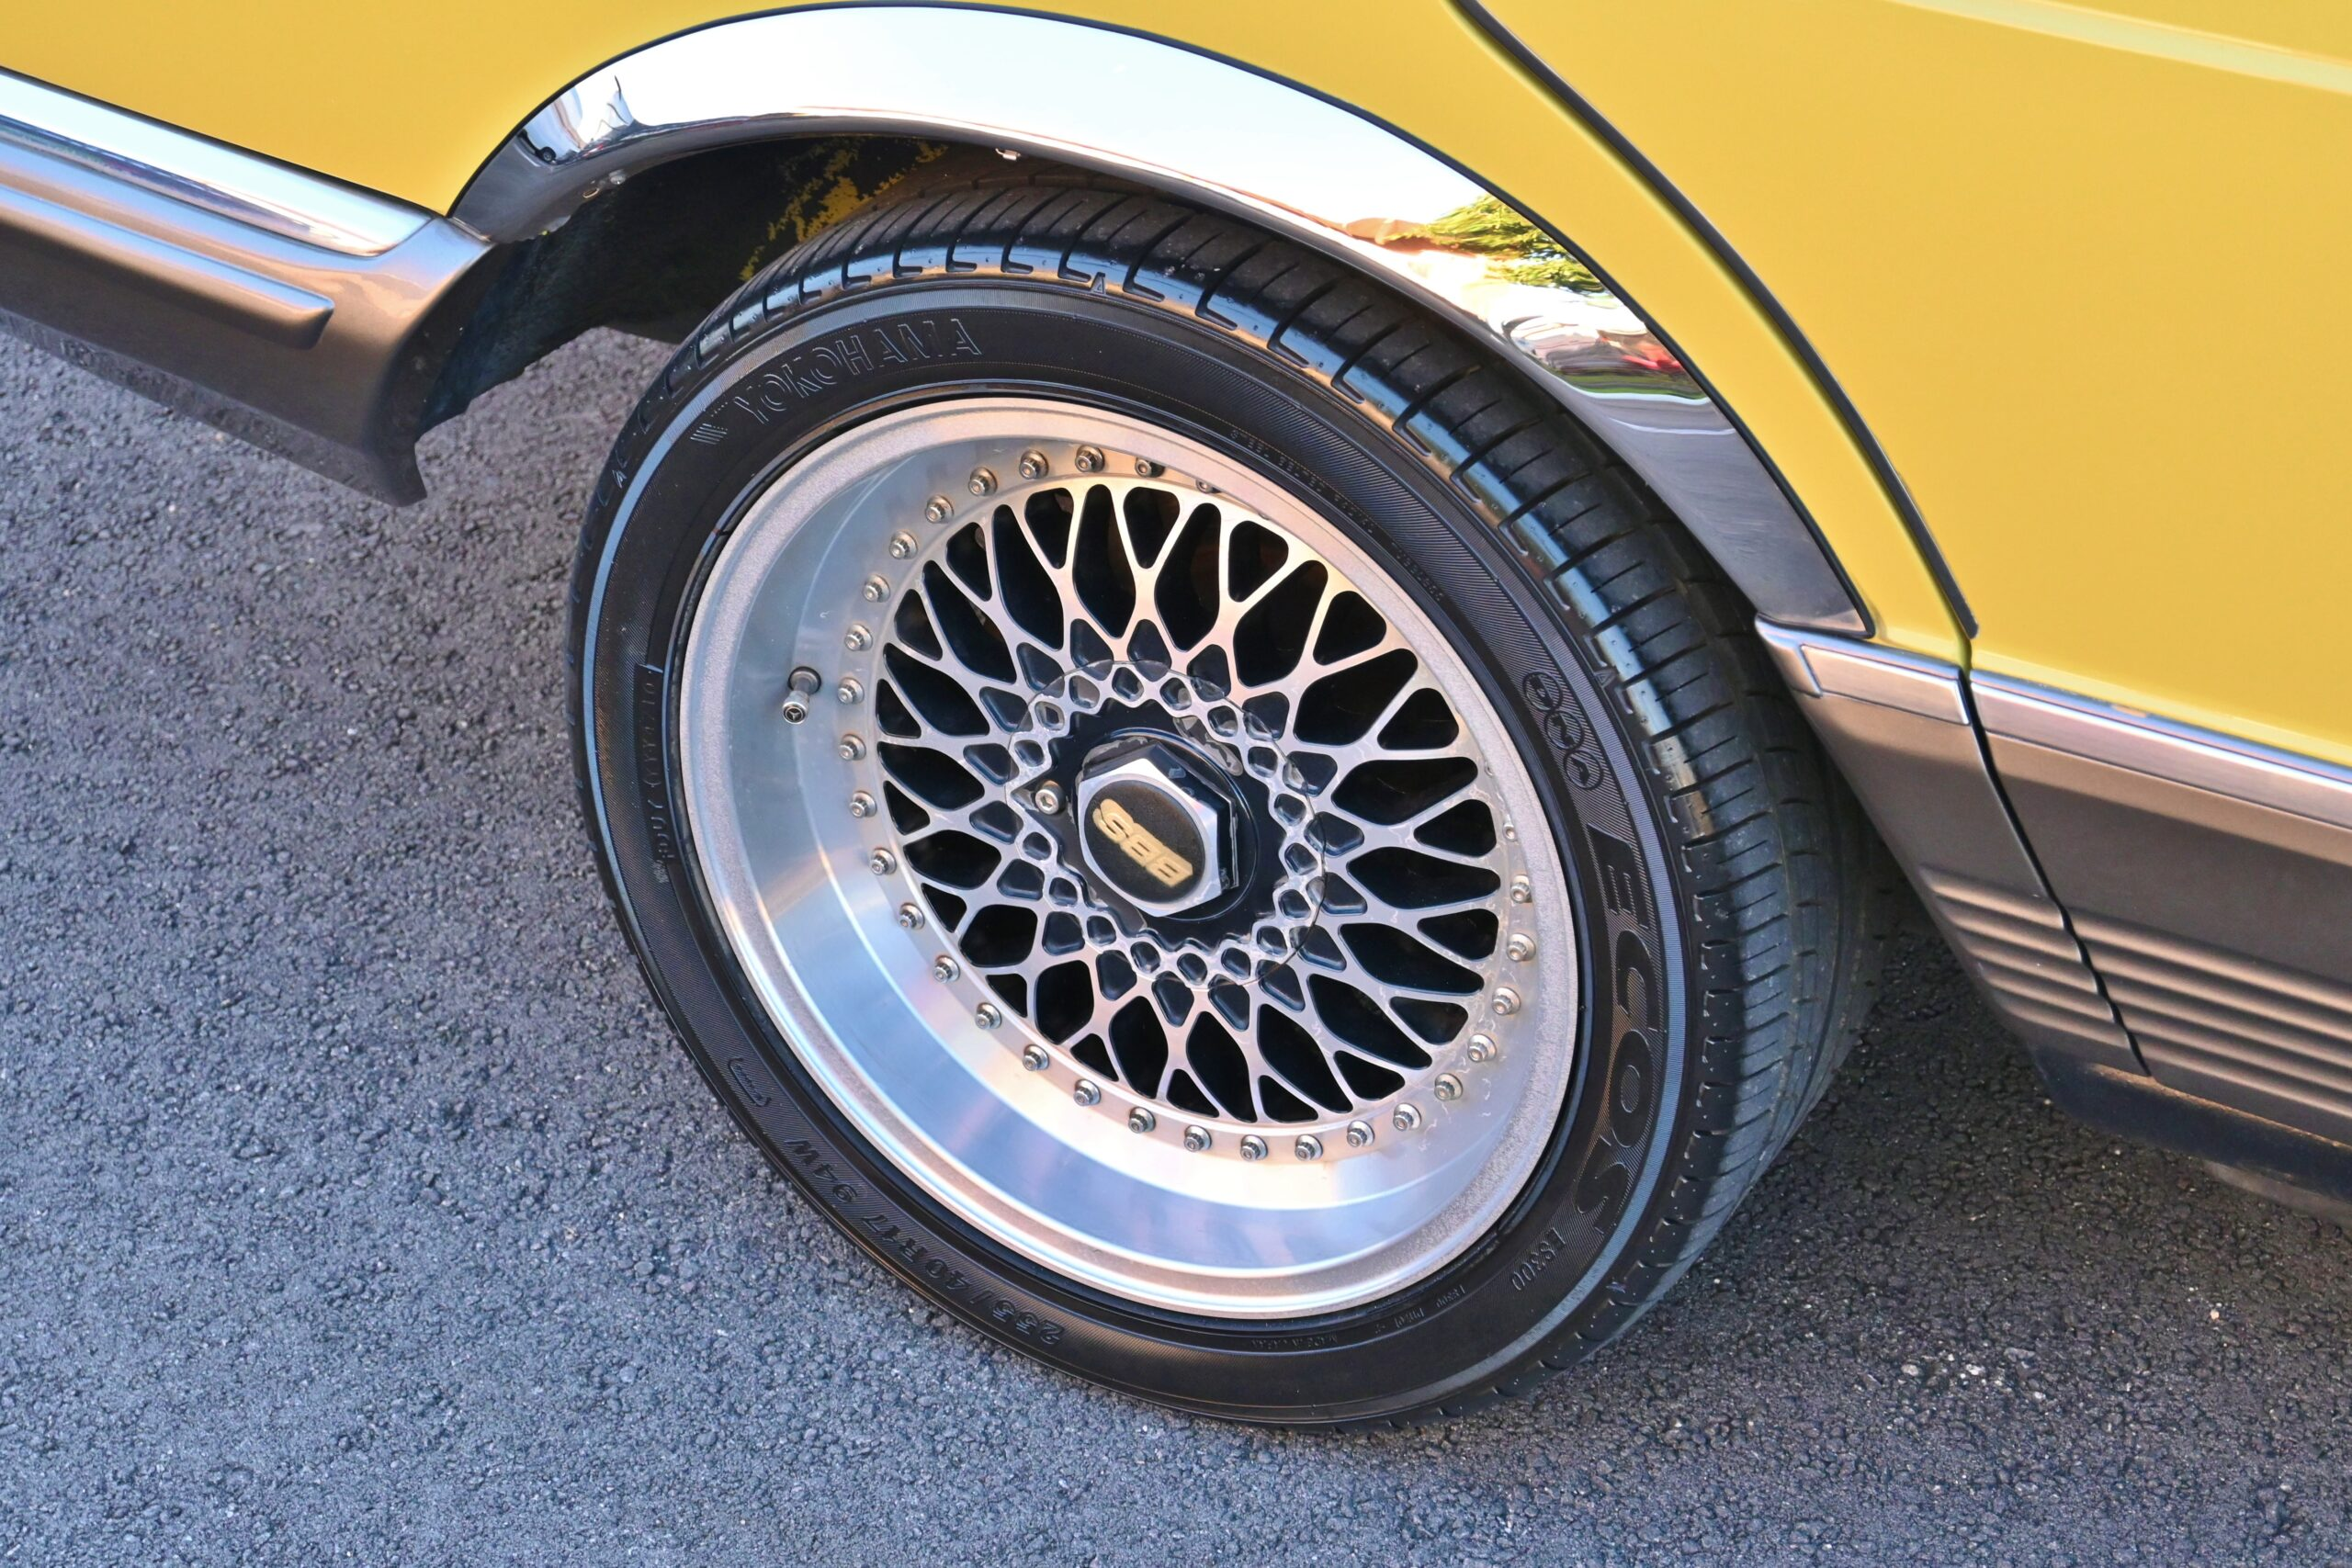 1981 Mercedes-Benz S-Class Euro 280 SE Lorinser W126 in rare Mimosa Yellow -Low Miles – BBS Wheels – Lorinser Exhaust/Suspension